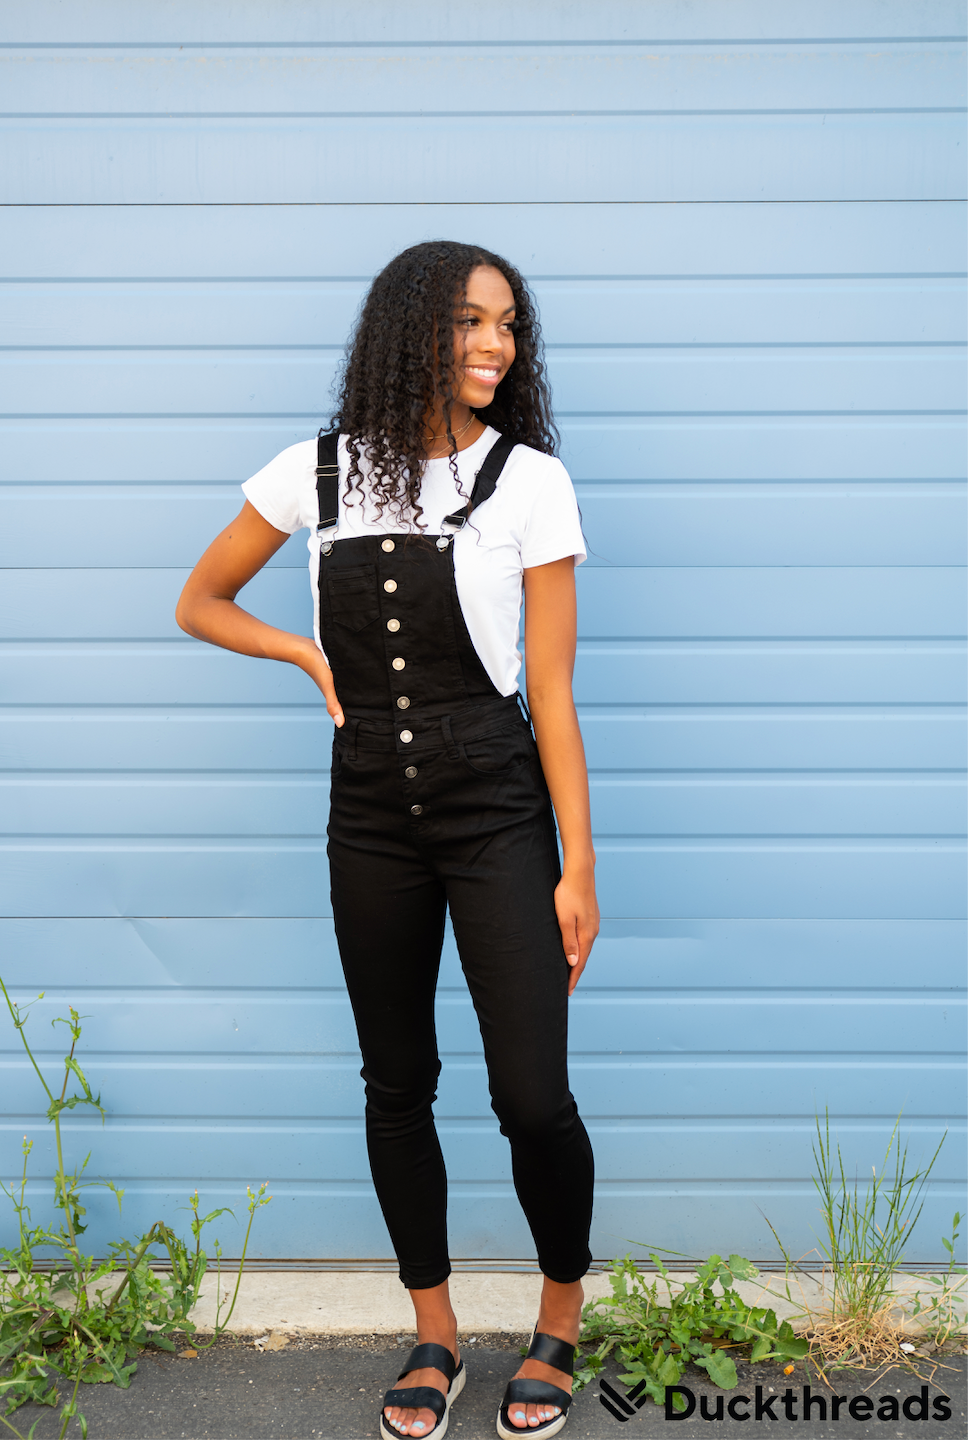 Kancan Black Denim Overalls for Women